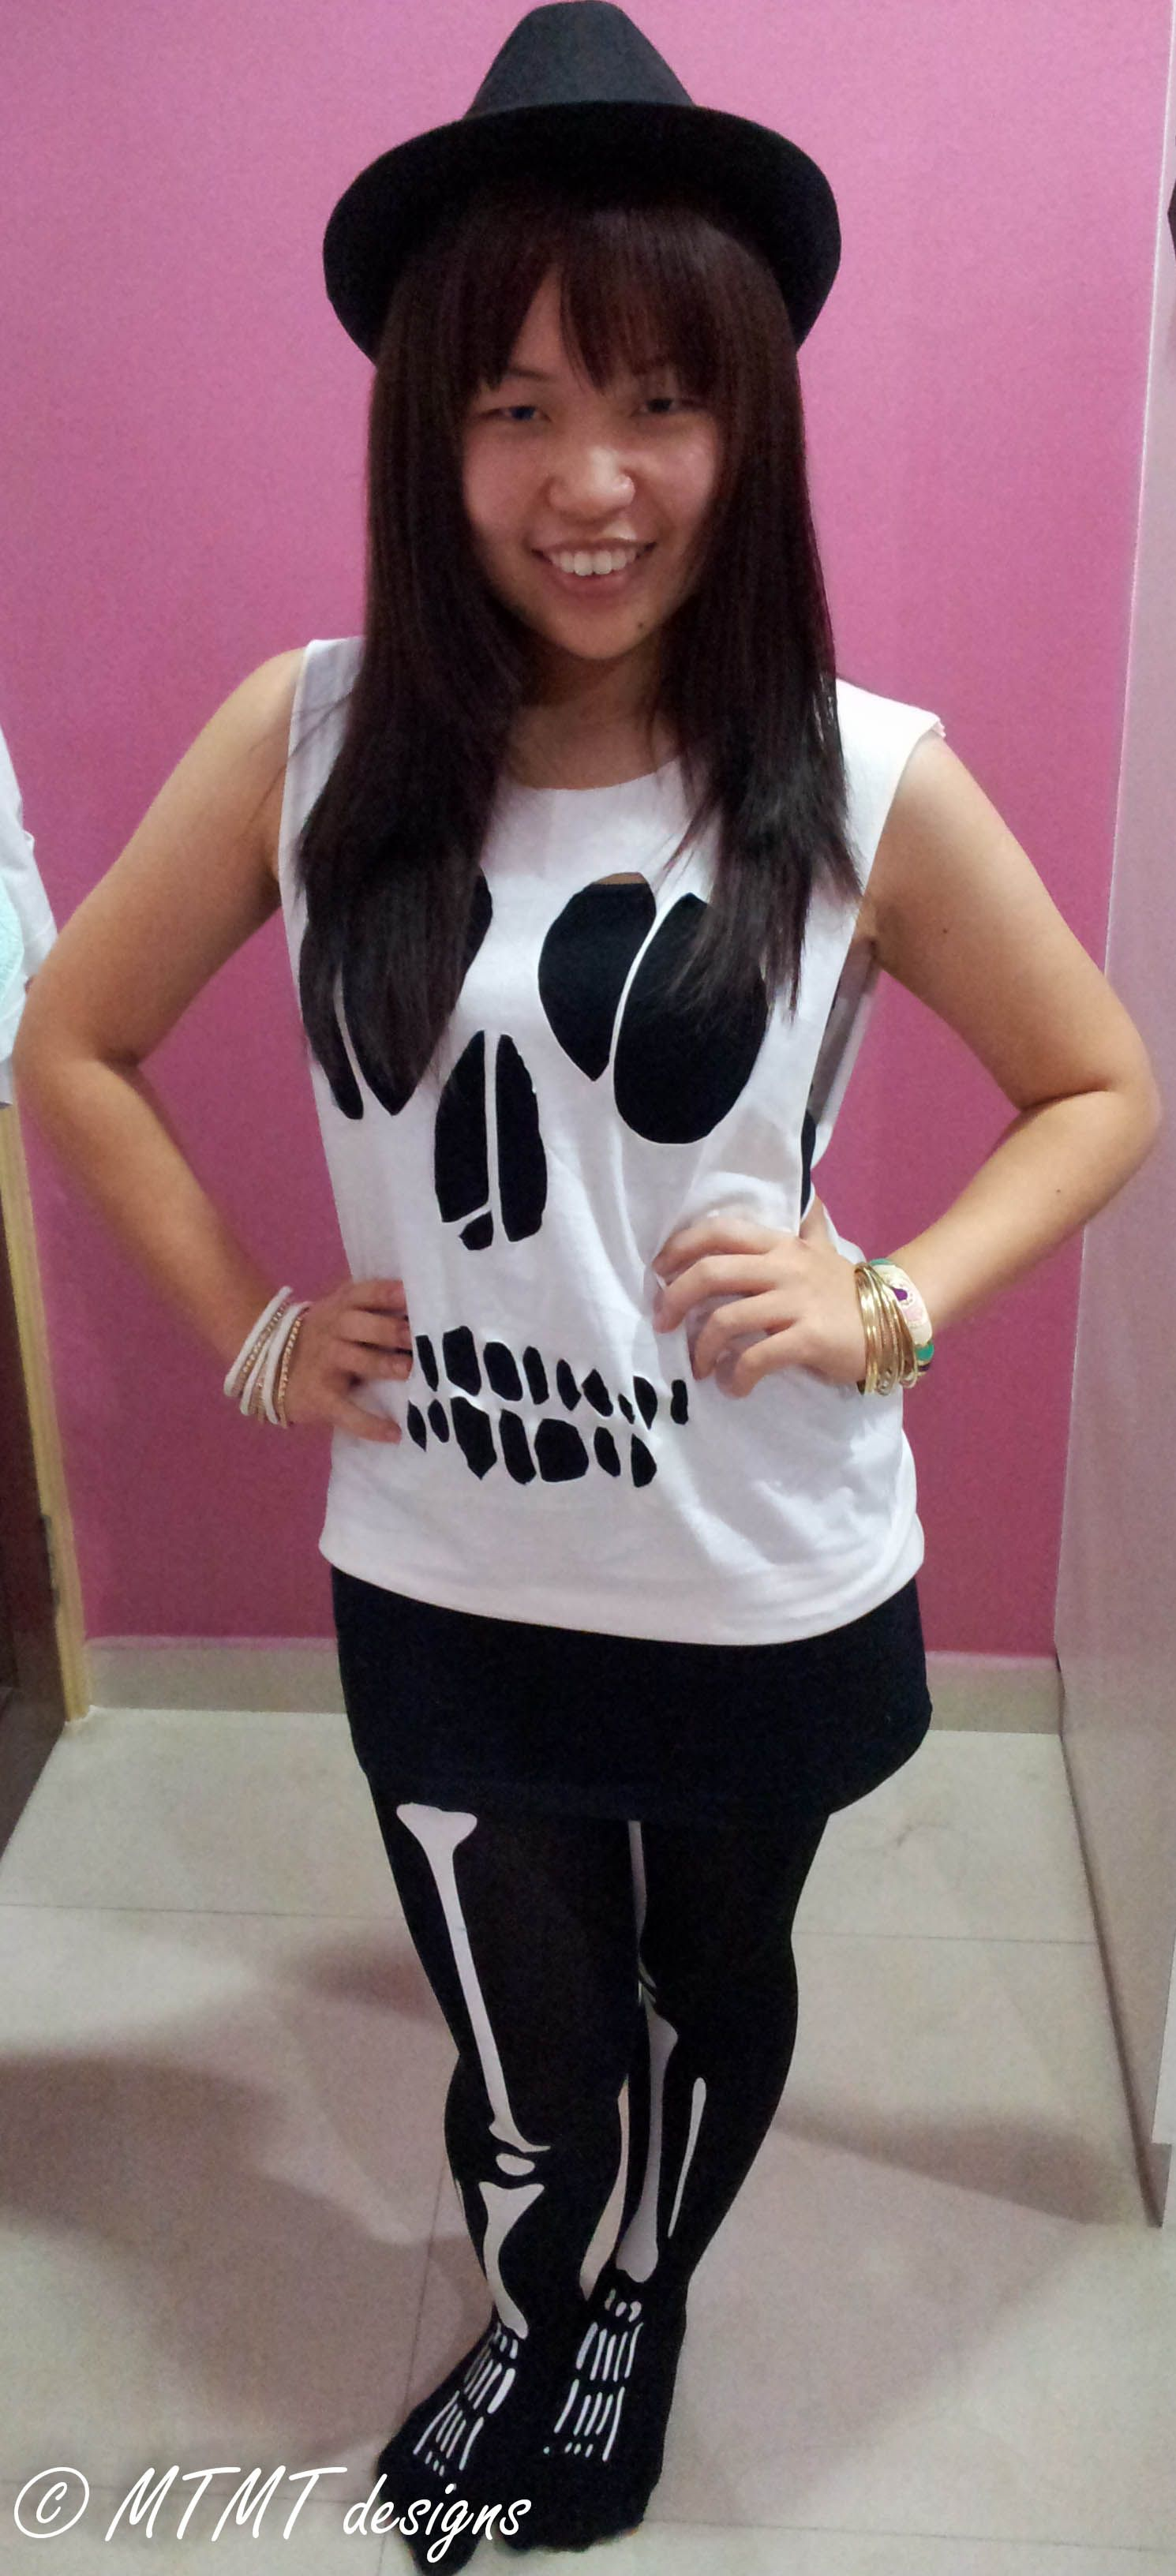 Decided to cut out my t-shirt following the trend :) skull cut-out design